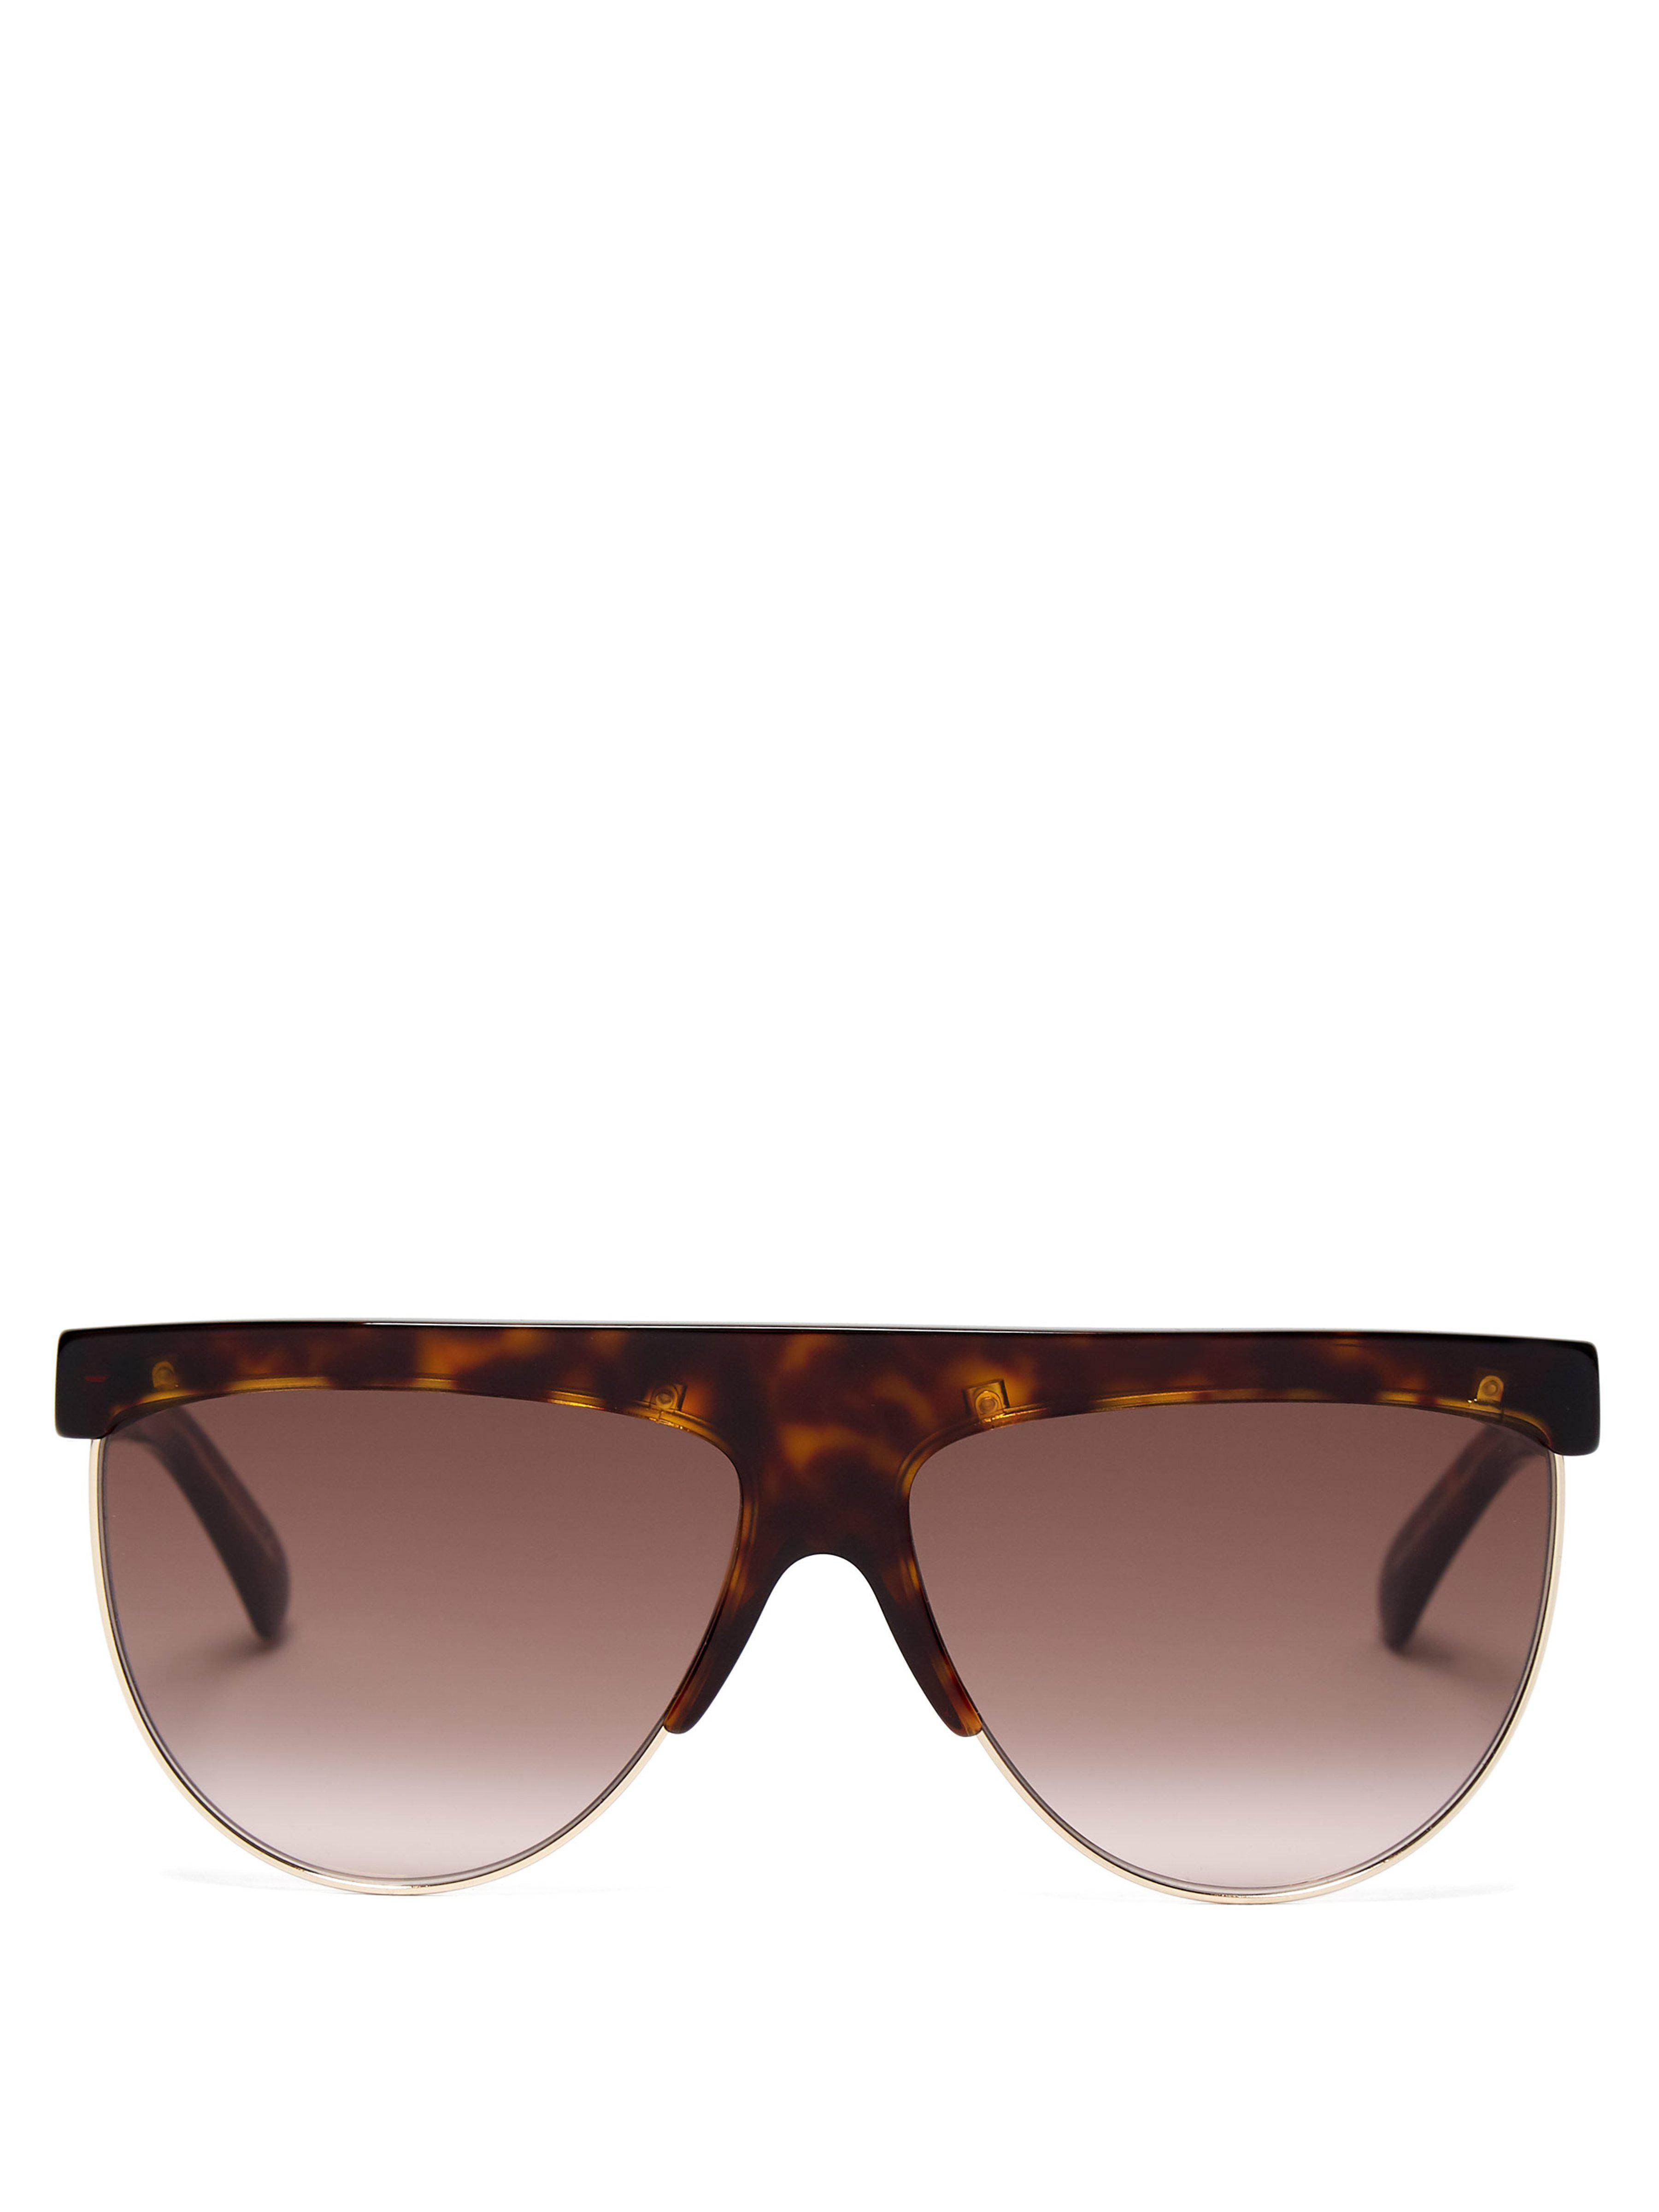 2b11e38828 Givenchy Flat Top Tortoiseshell Sunglasses in Brown - Lyst